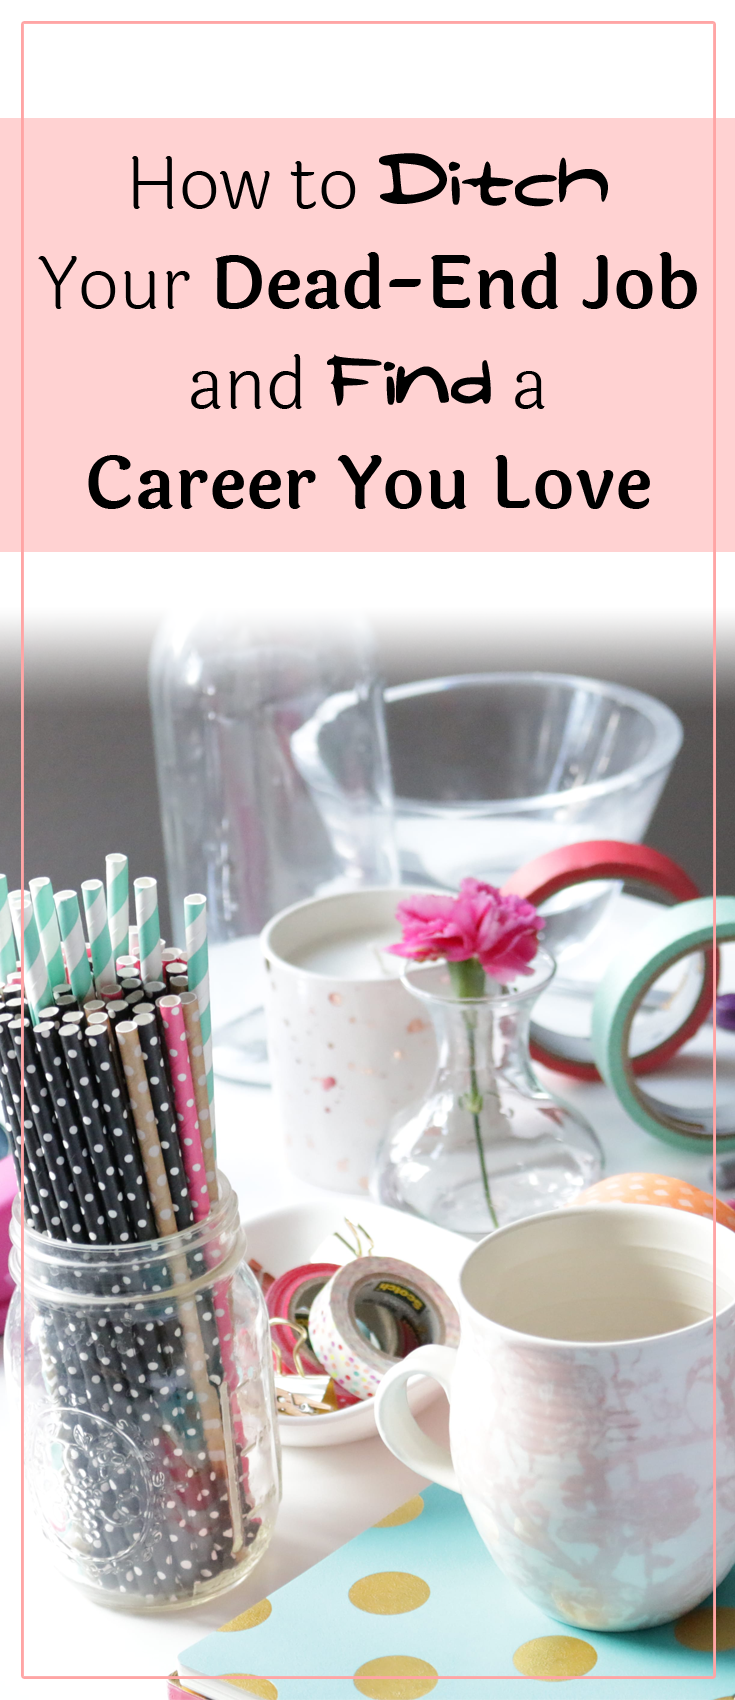 interview anna runyan on the growth of a career how to ditch your dead end job and a career you love hear about my journey to where i am now and what i have learned in this interview